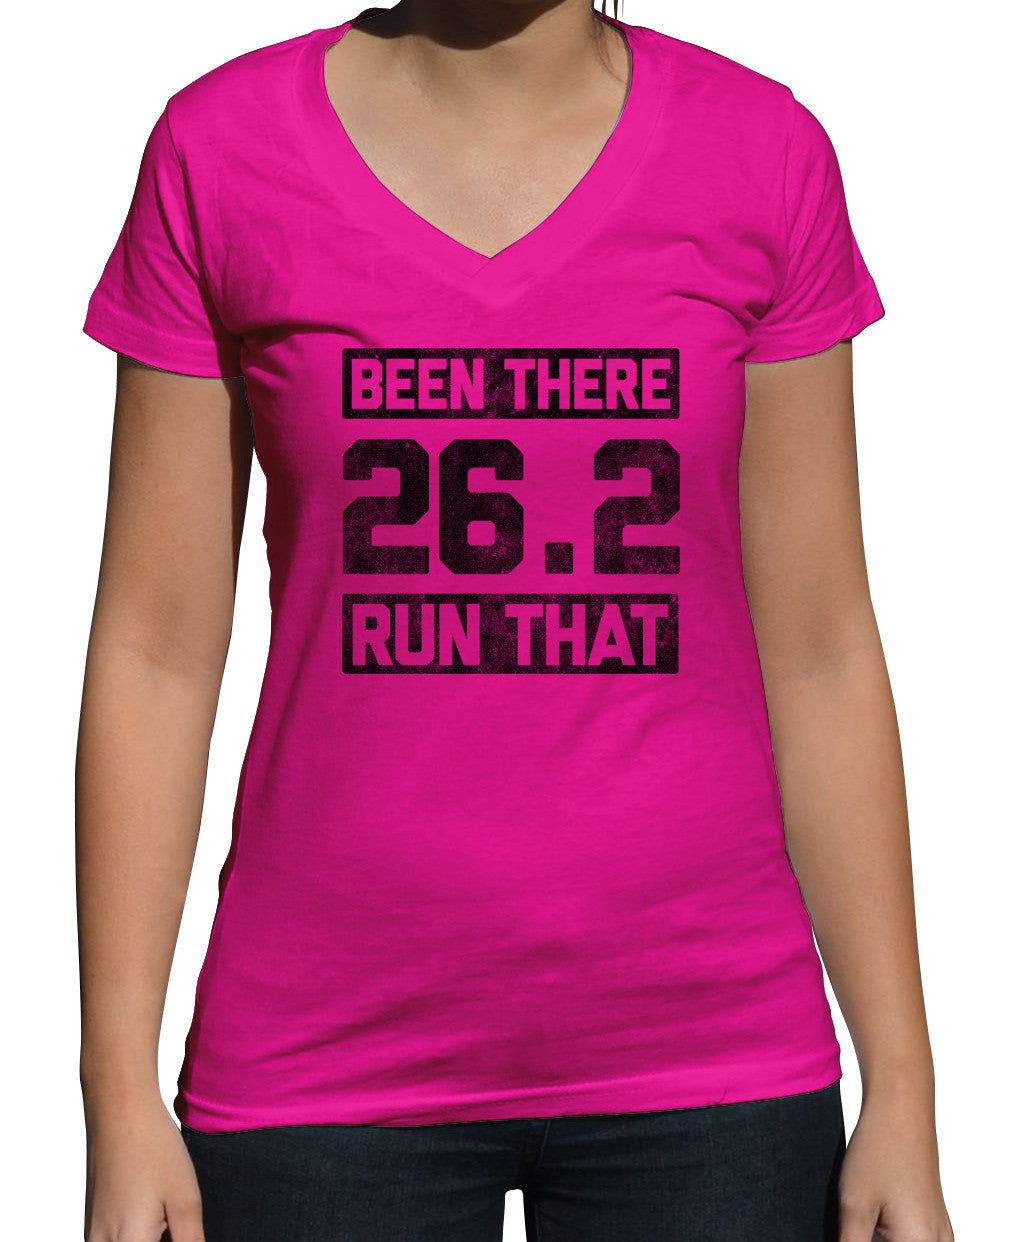 Women's 26.2 Been There Run That Vneck T-Shirt Marathon Runner